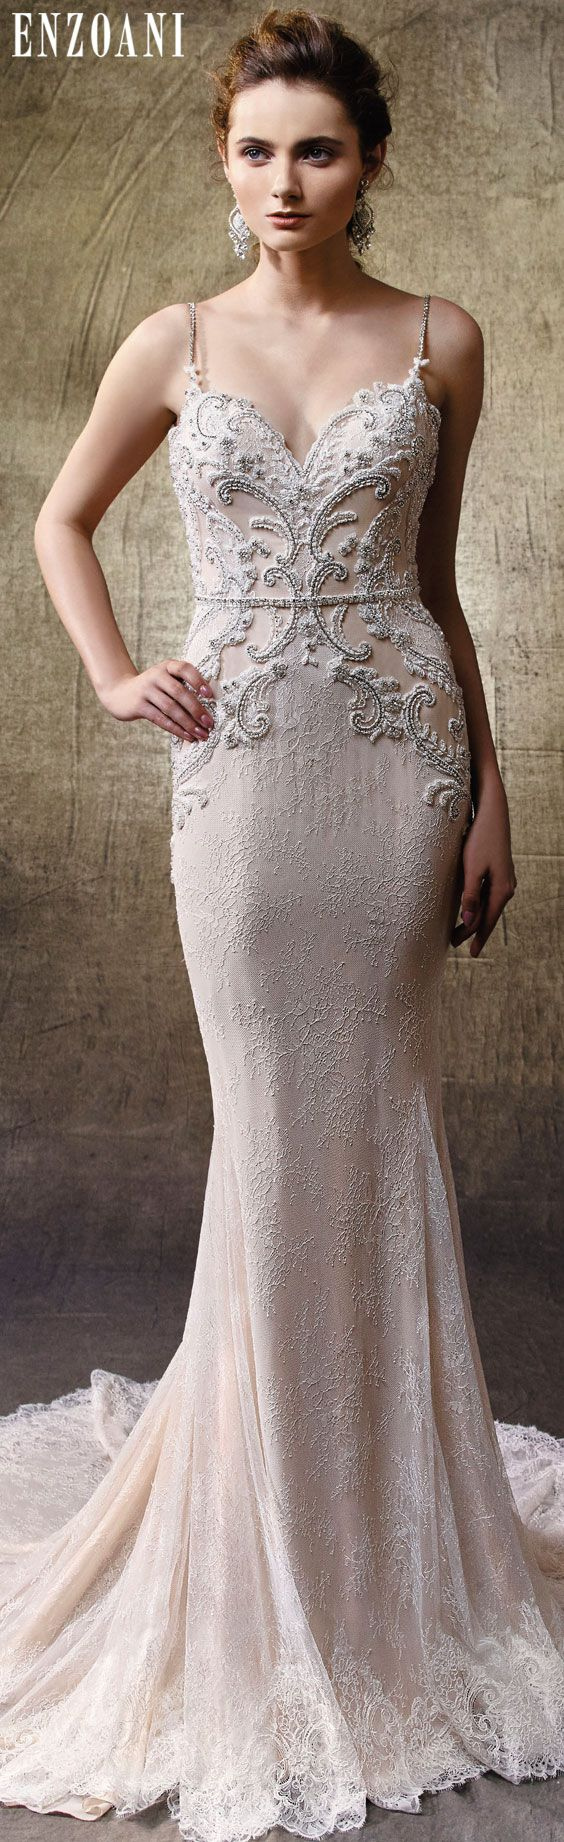 120 best 2017 Enzoani Collection images on Pinterest | Short wedding ...